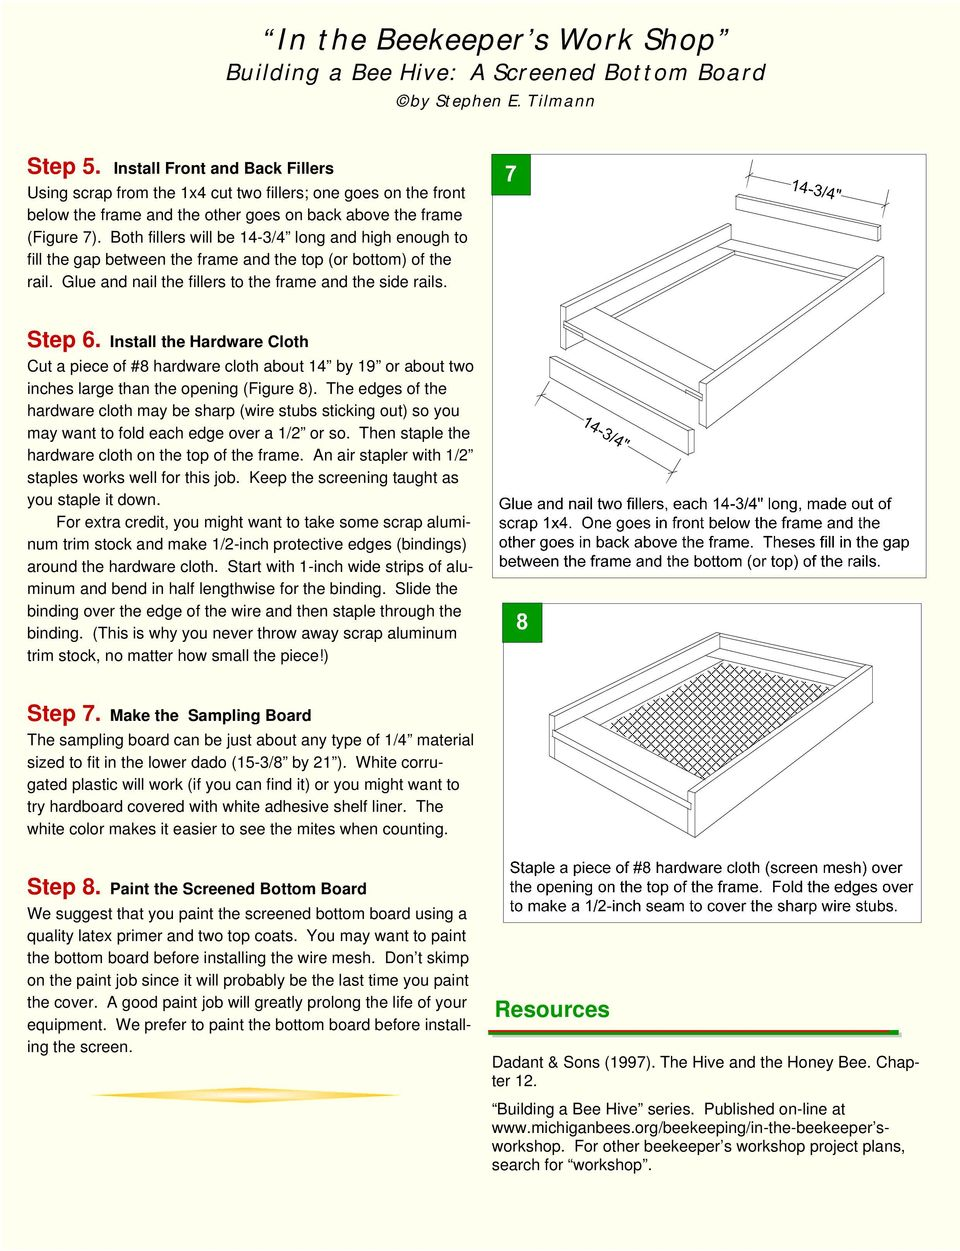 A Screened Bottom Board Pdf Beehive Phone Wiring Diagram Install The Hardware Cloth Cut Piece Of 8 About 14 By 19